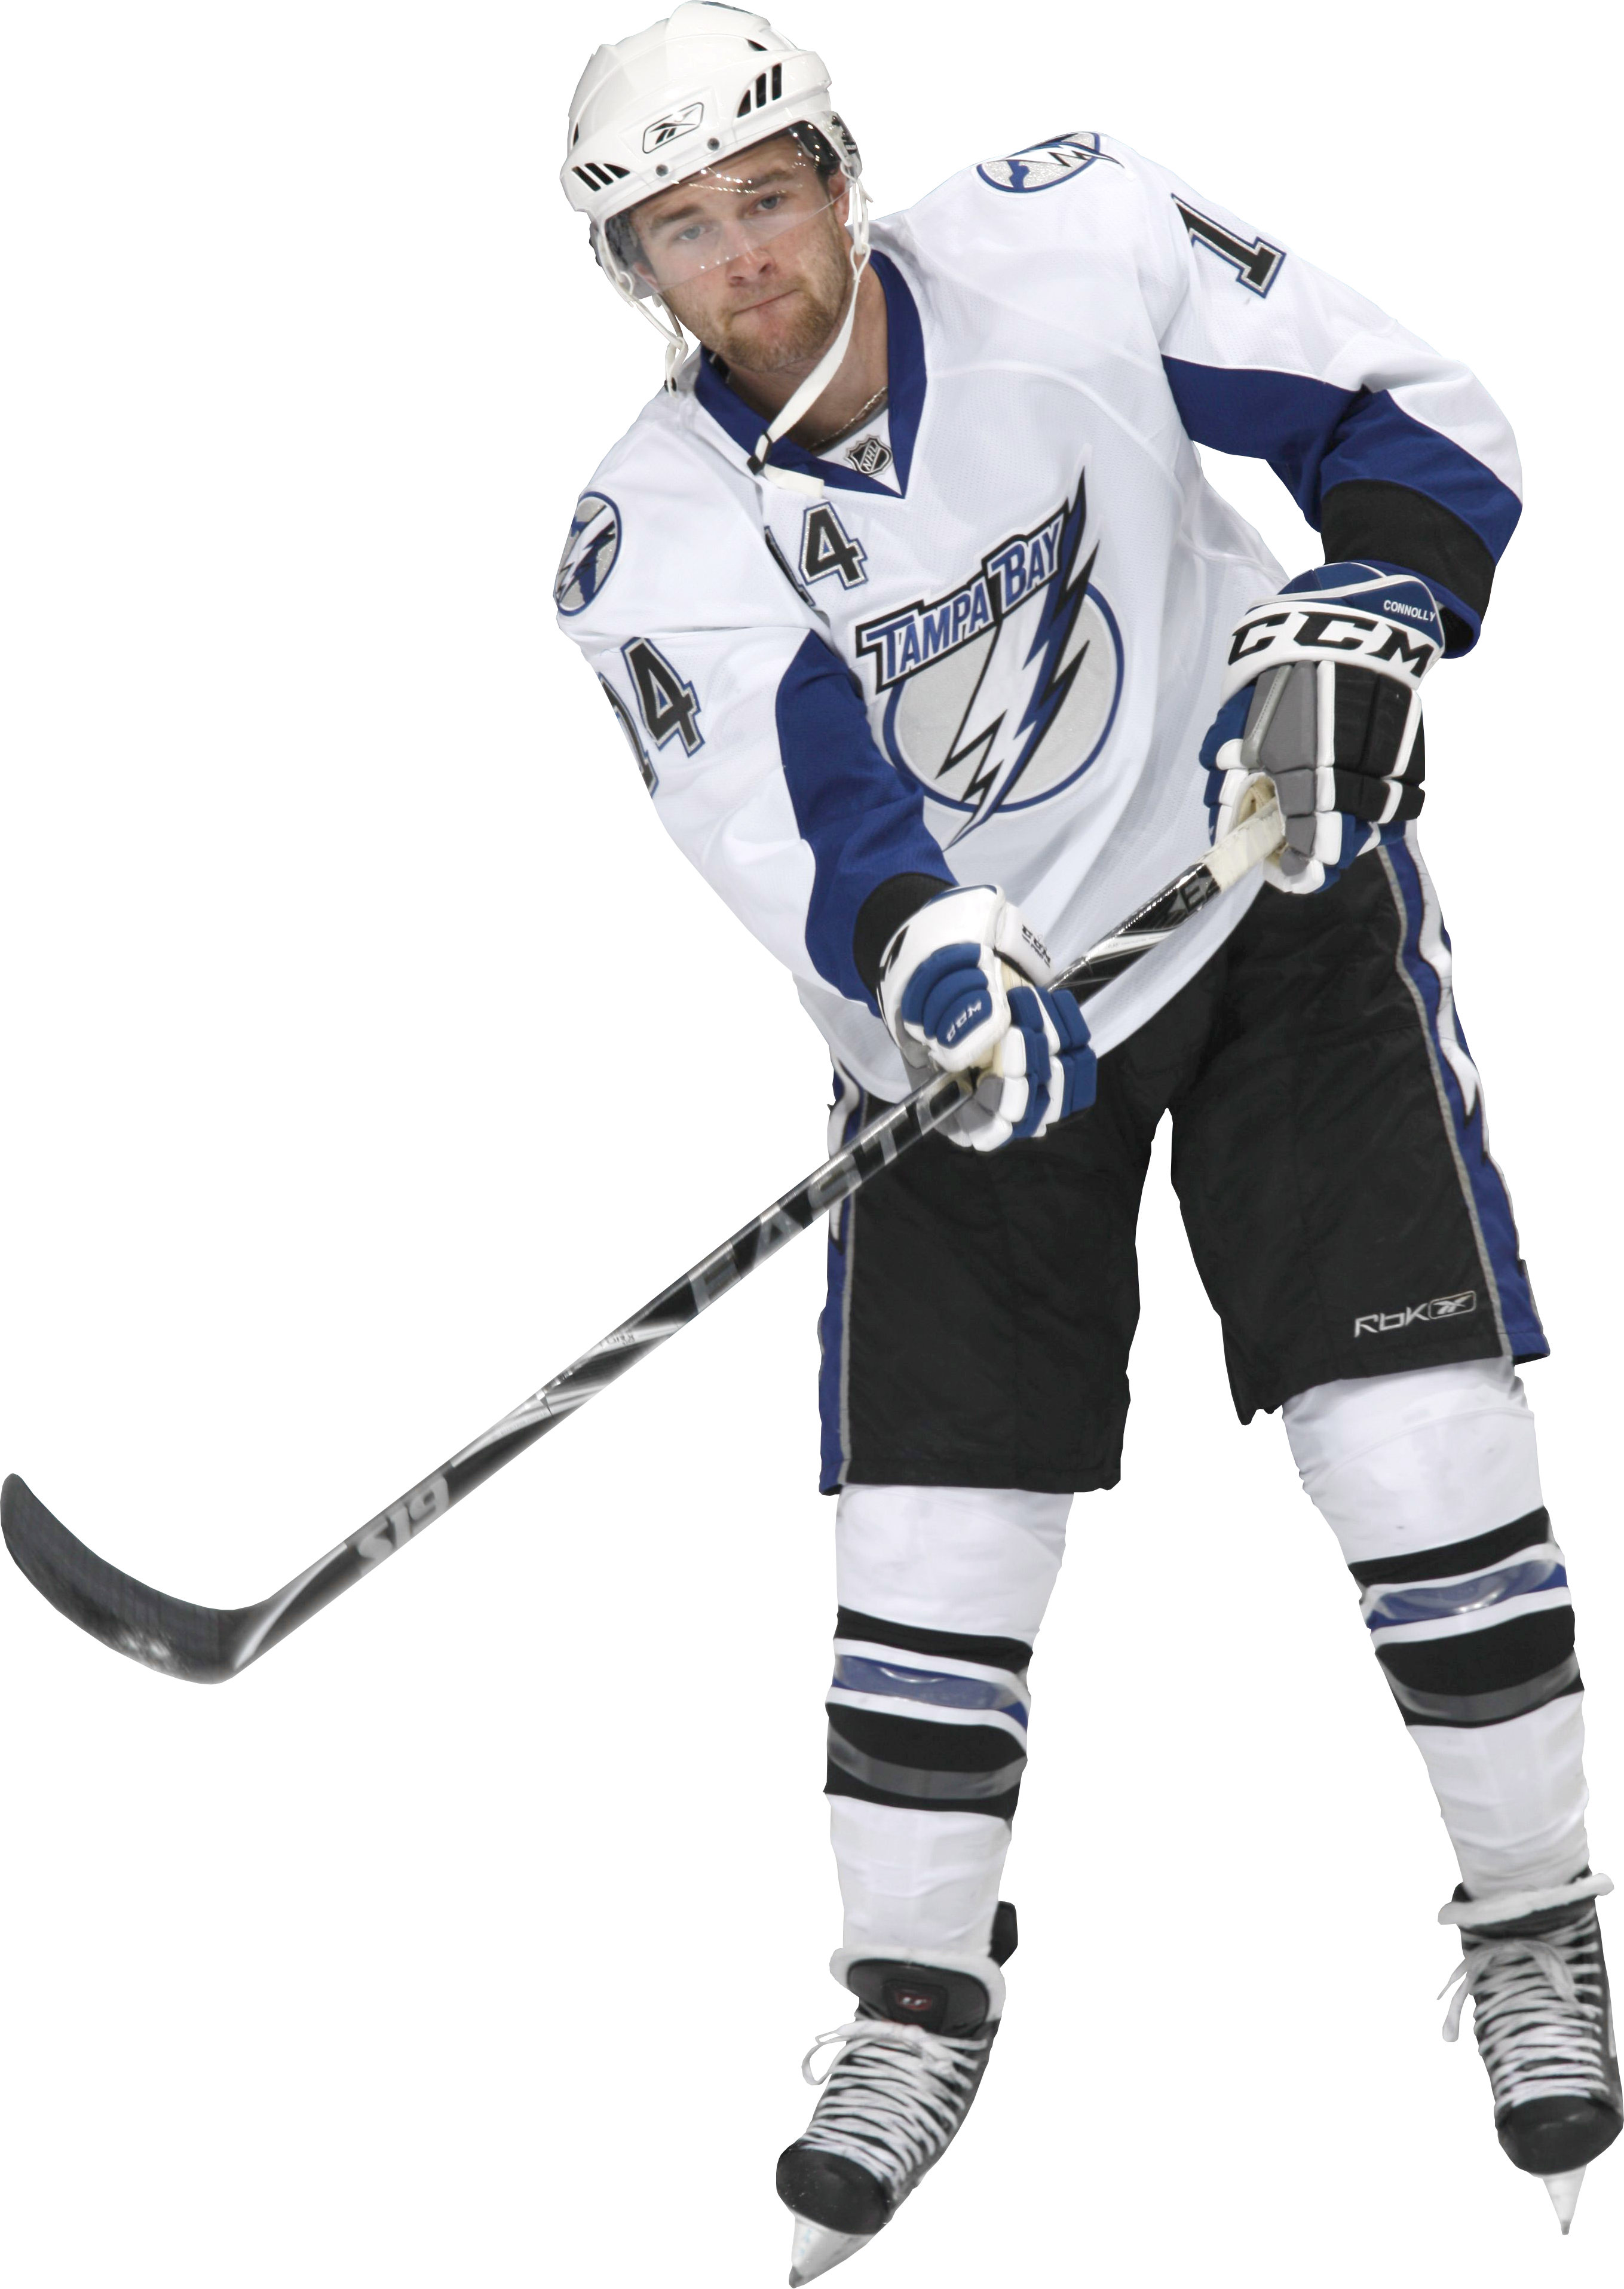 Now you can download Hockey PNG Image